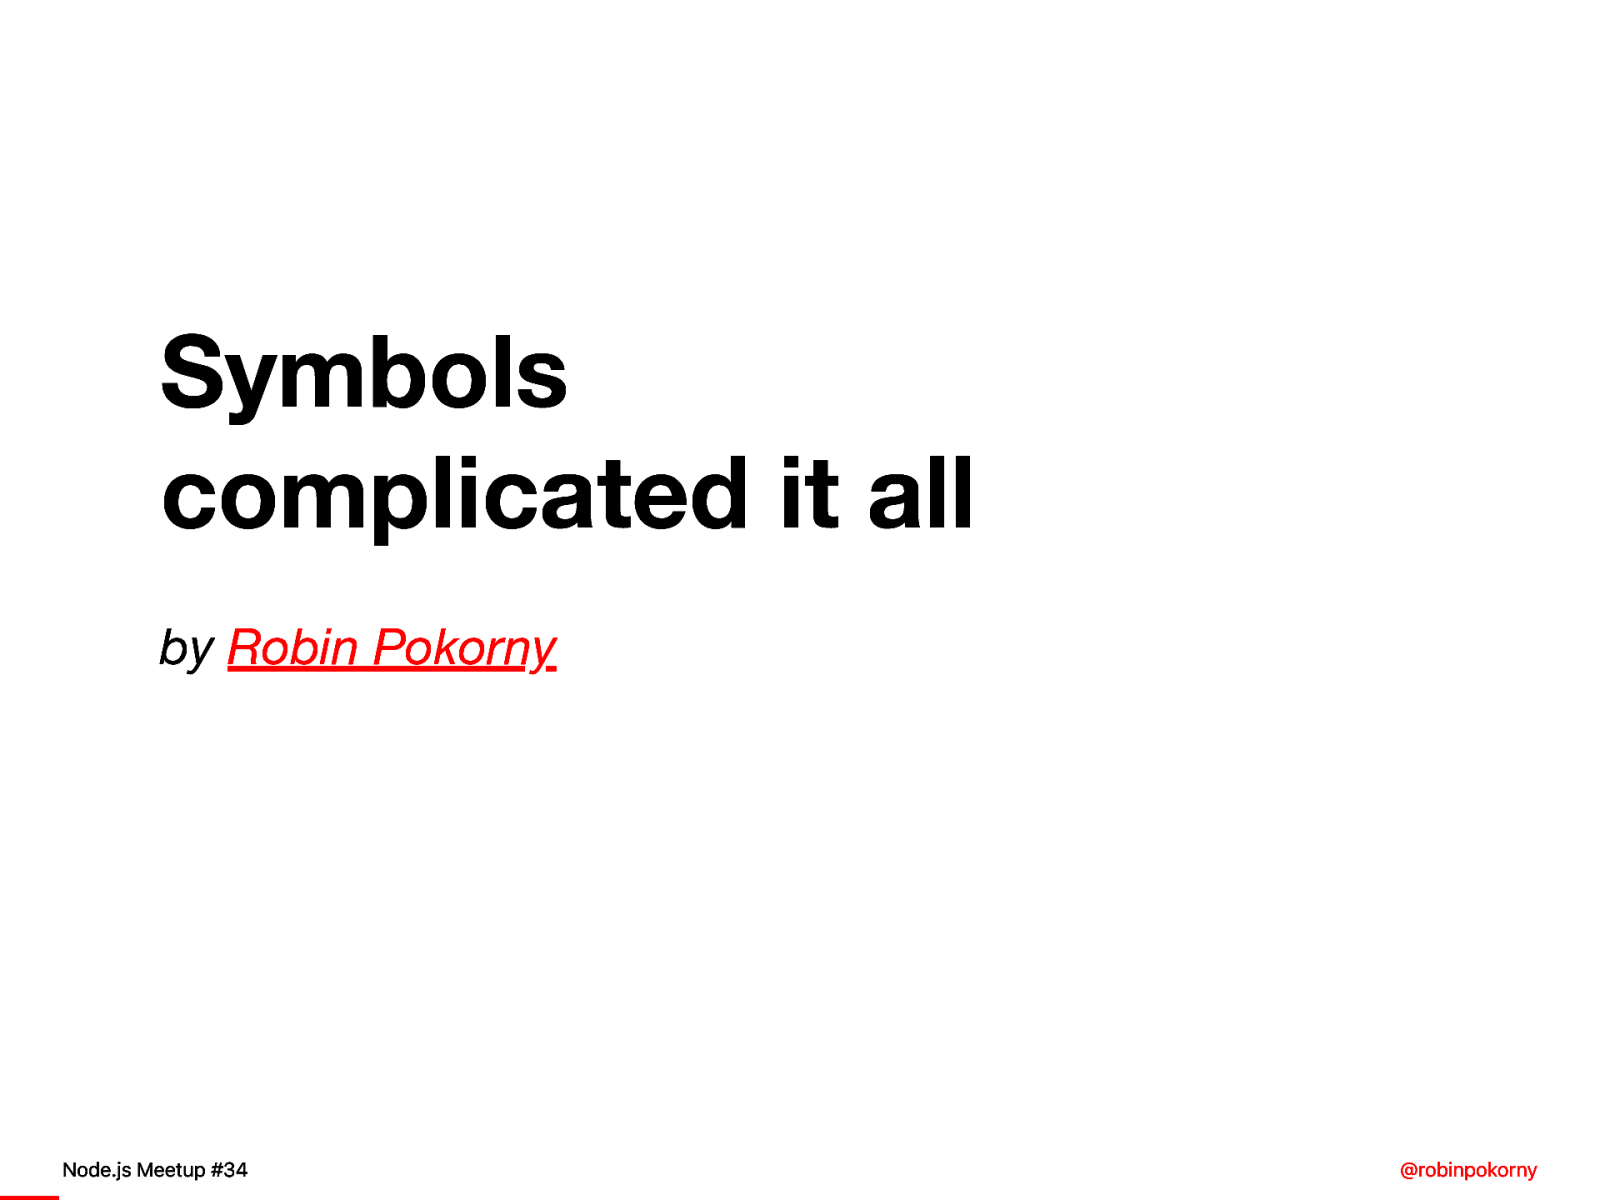 Symbols complicated it all